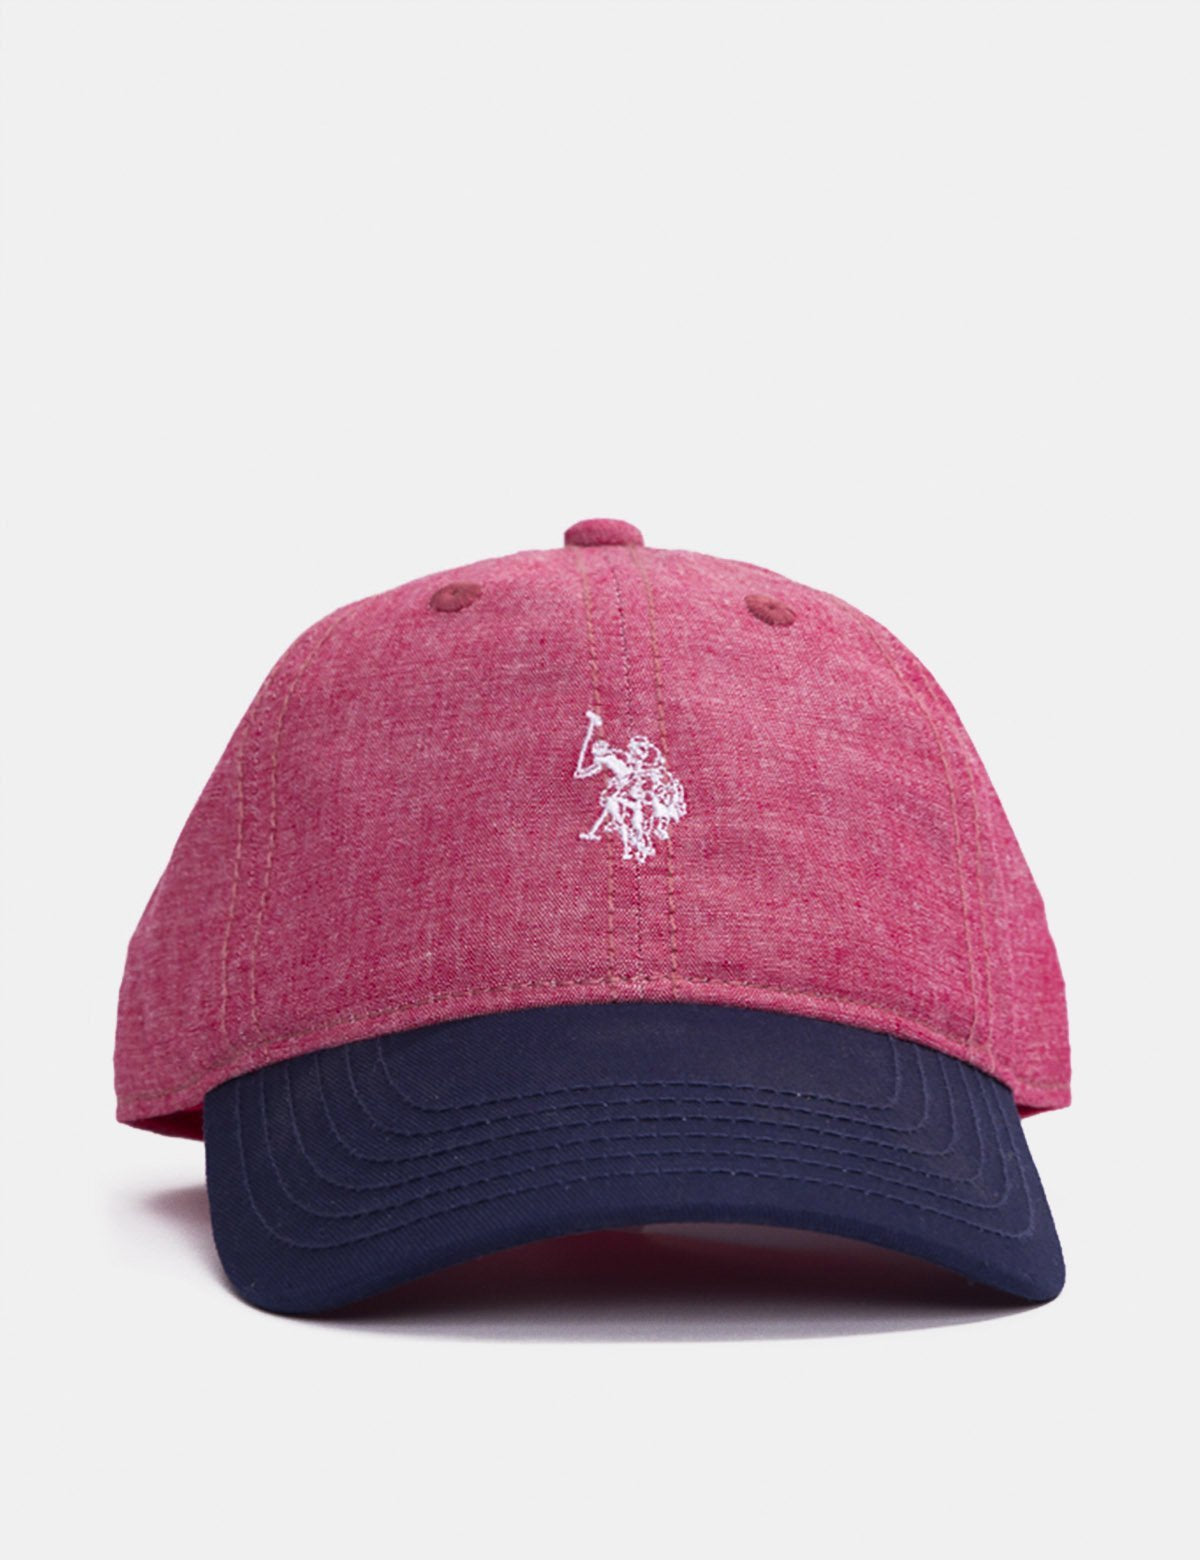 BOYS CHAMBRAY CAP - U.S. Polo Assn.